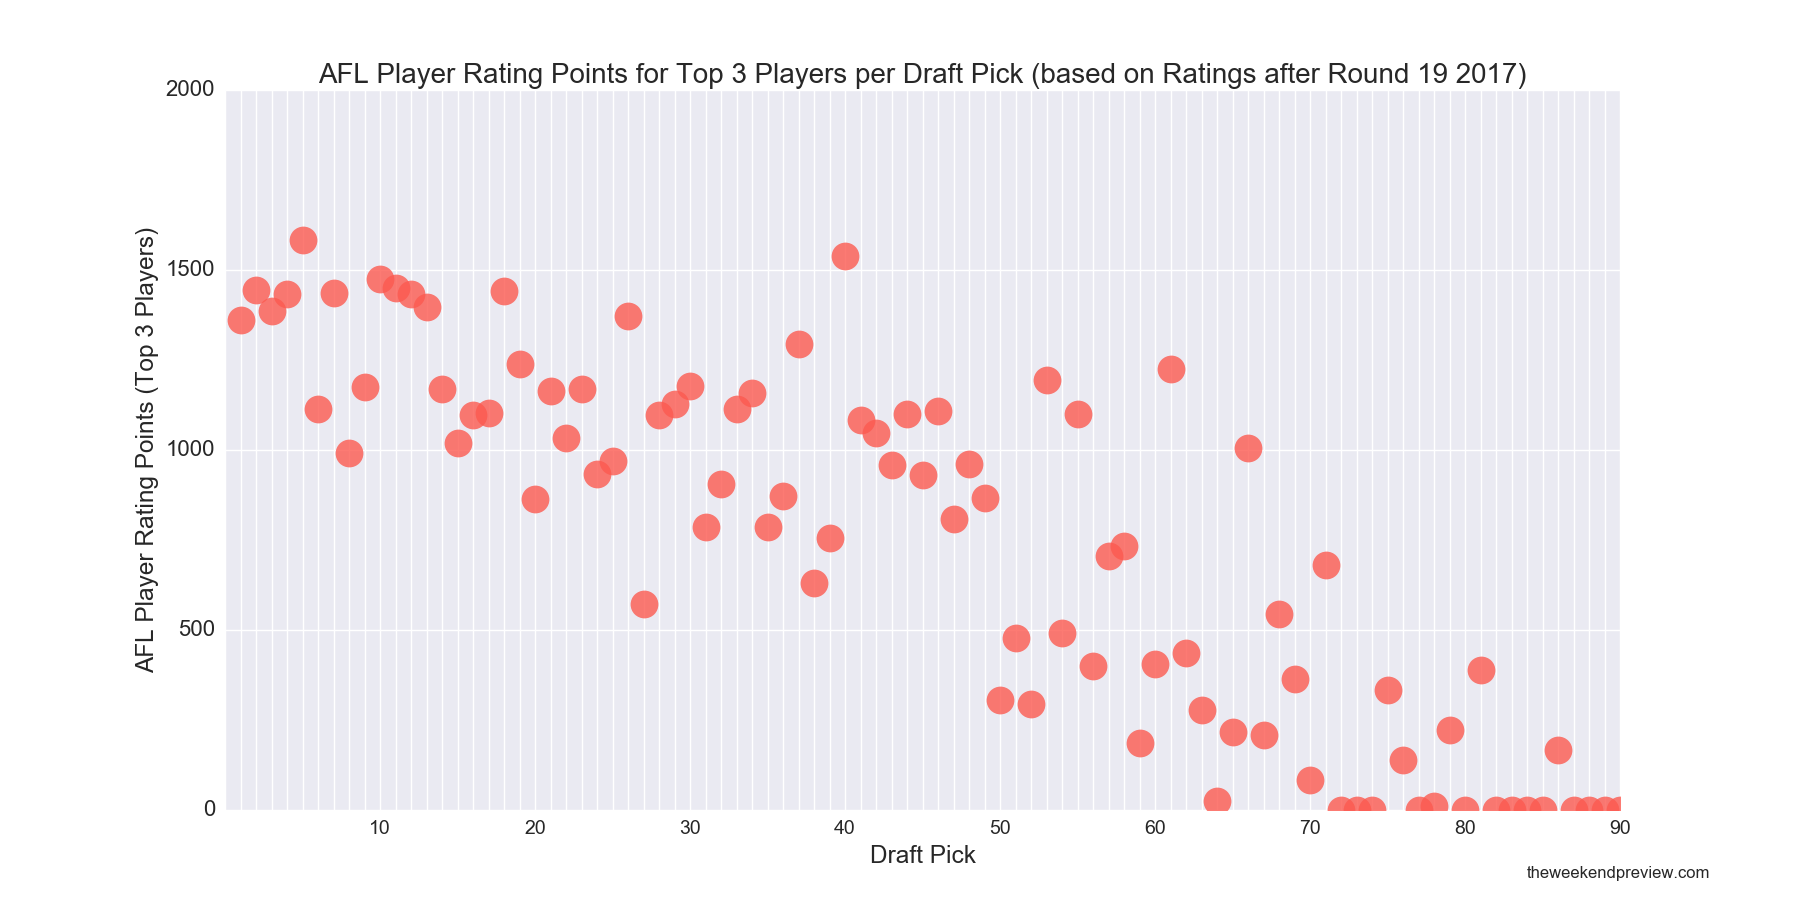 Figure-2: AFL Player Rating Points for Top 3 Players per Draft Pick (based on Ratings after Round 19 2017)